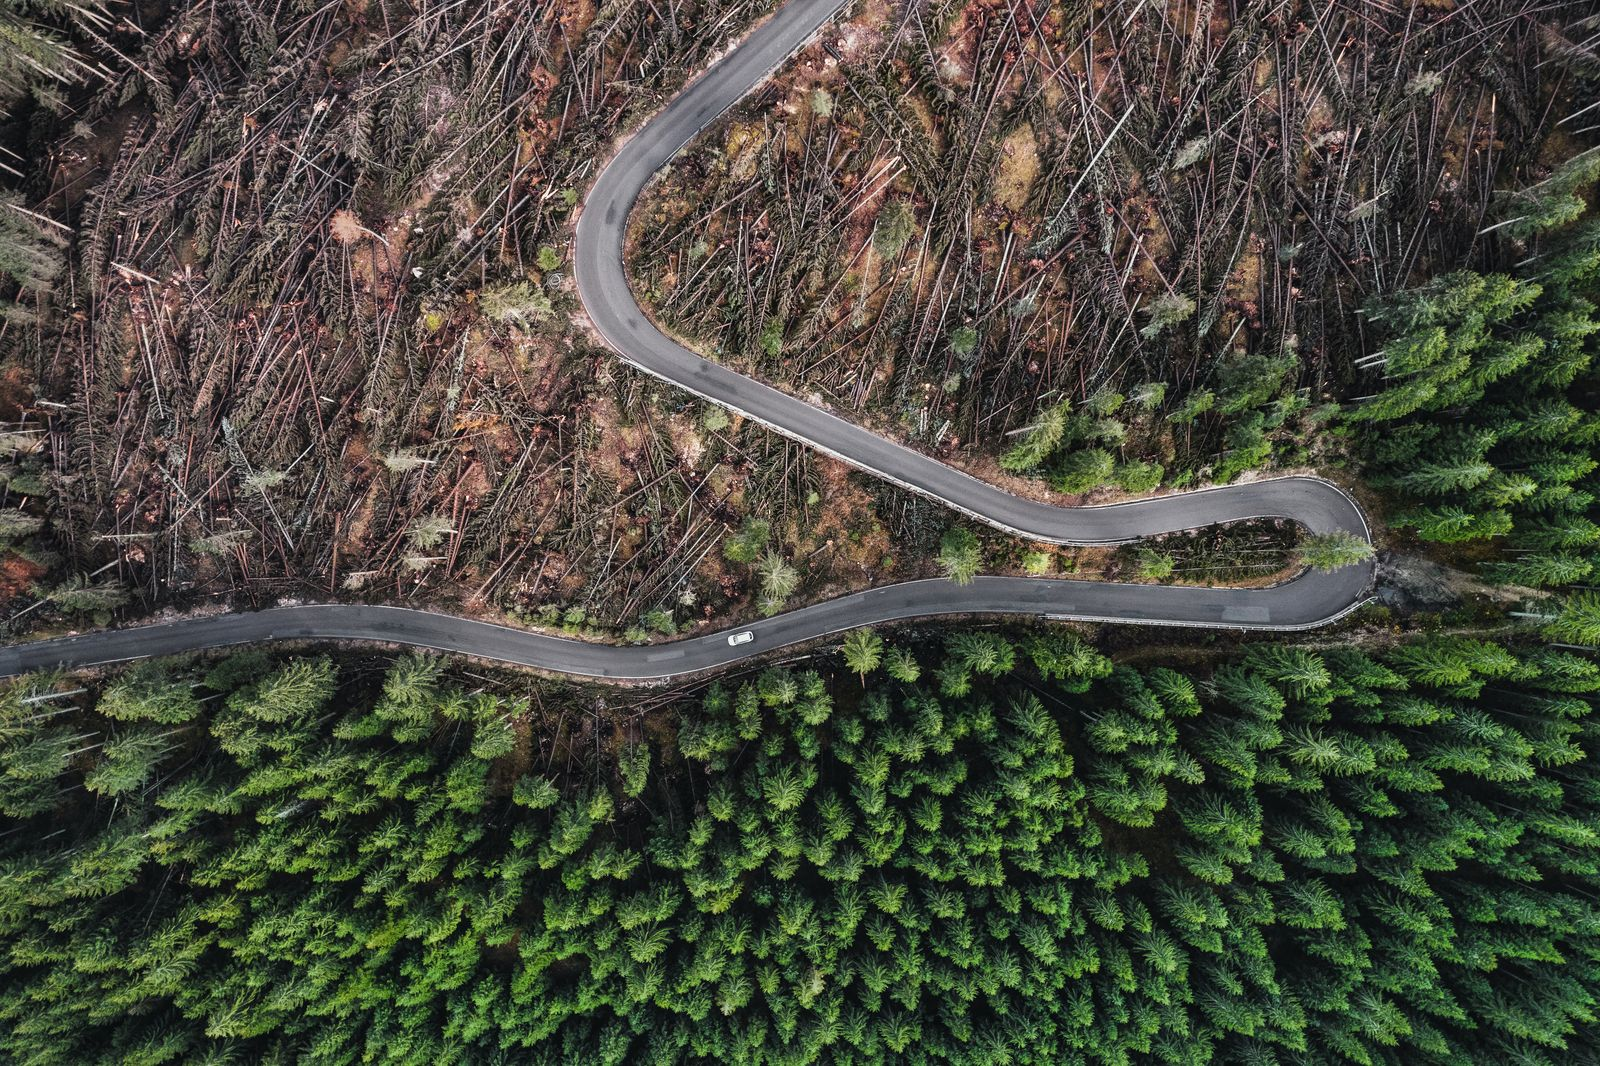 Incredible perspective showing destruction to a forest caused by a storm photographed by drone, Dolomites, Italy